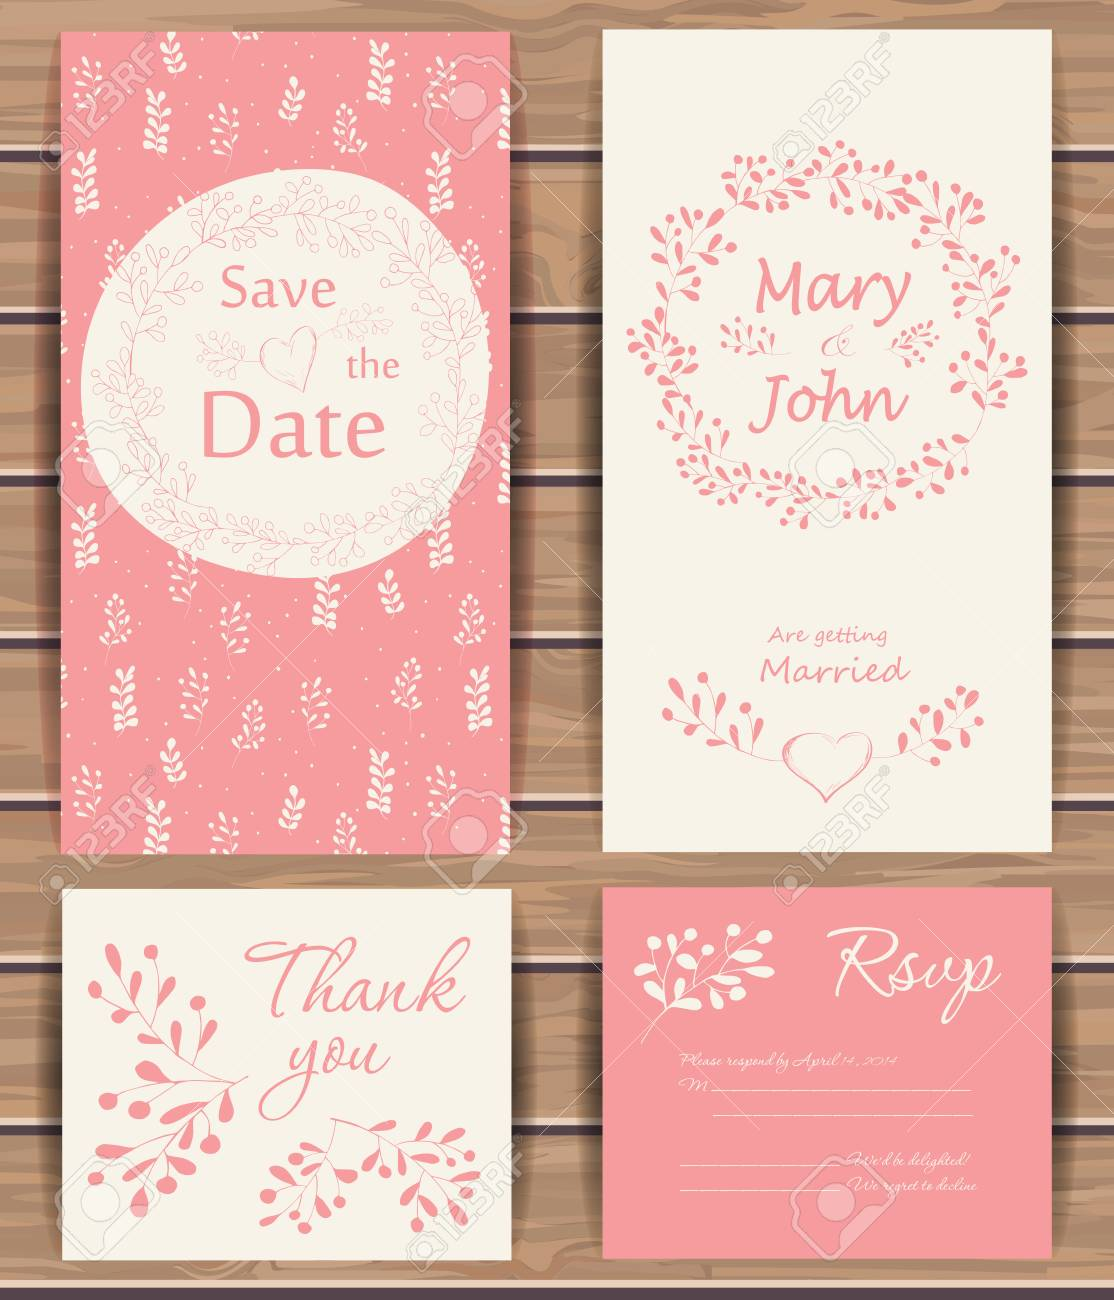 Greeting Card Templates | Floral Vector Card Templates Hand Drawn Design For Save The Date